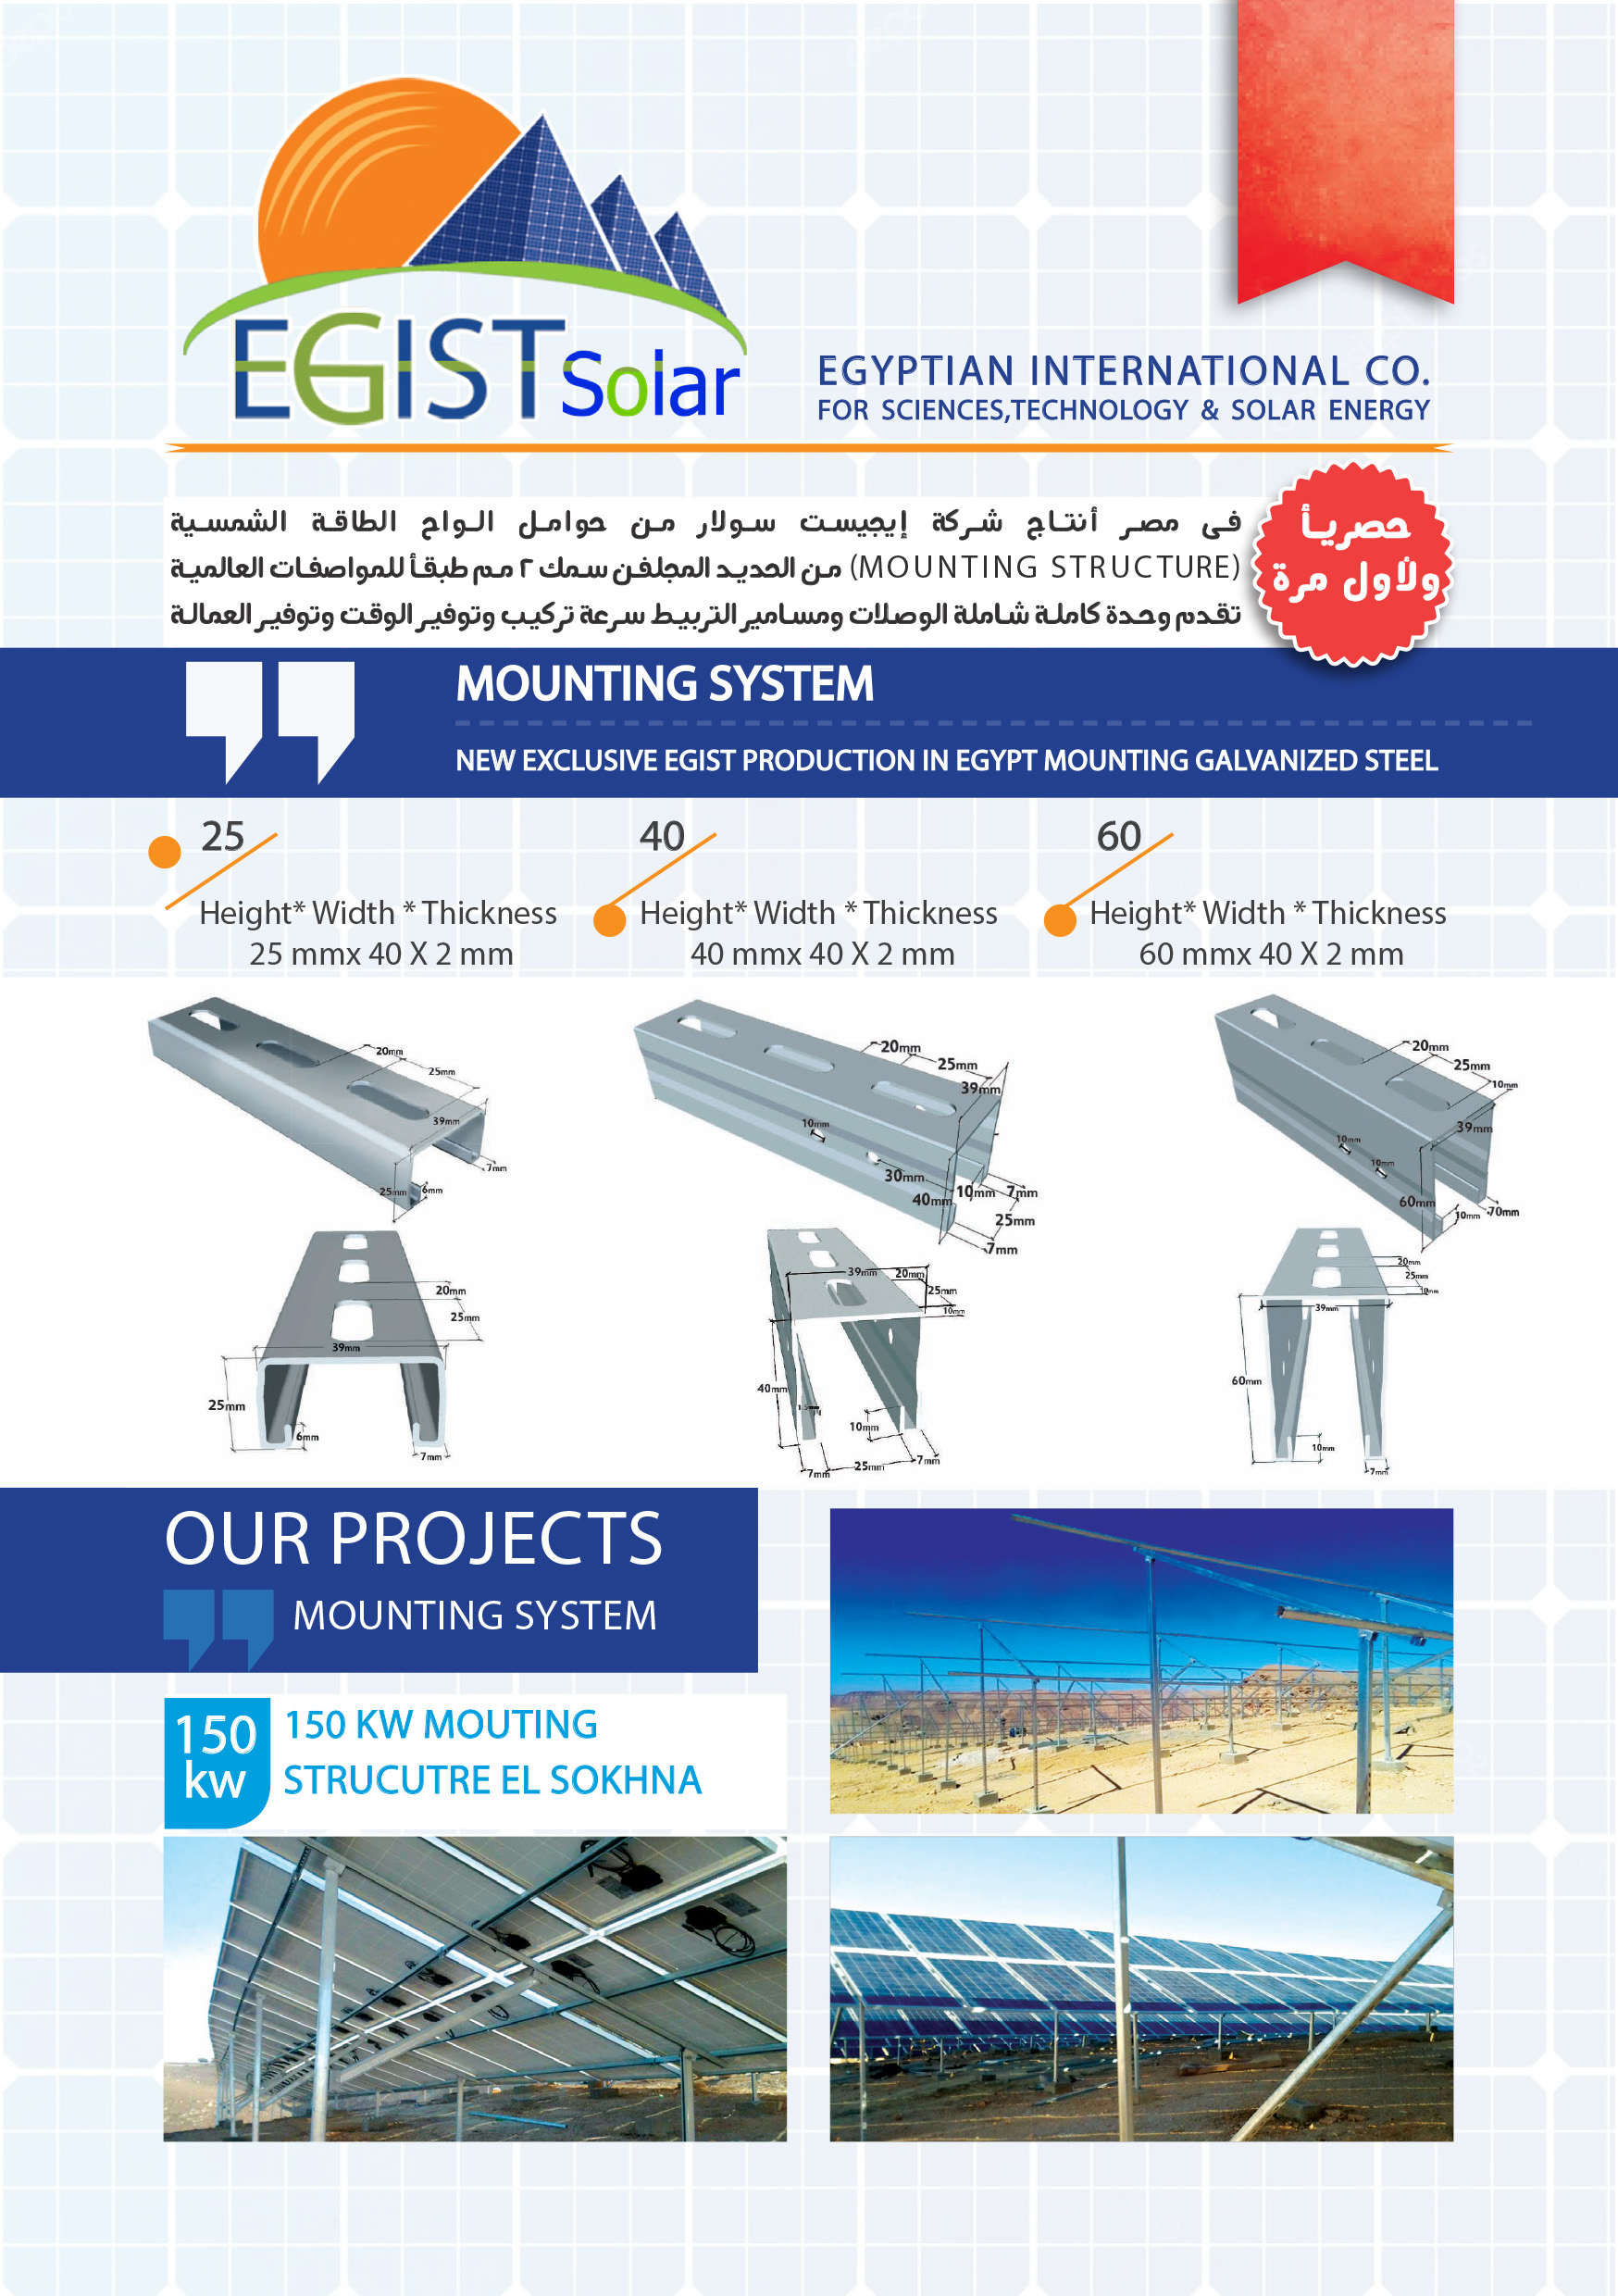 EGIST SOLAR FOR MOUNTING STRUCTURE pr